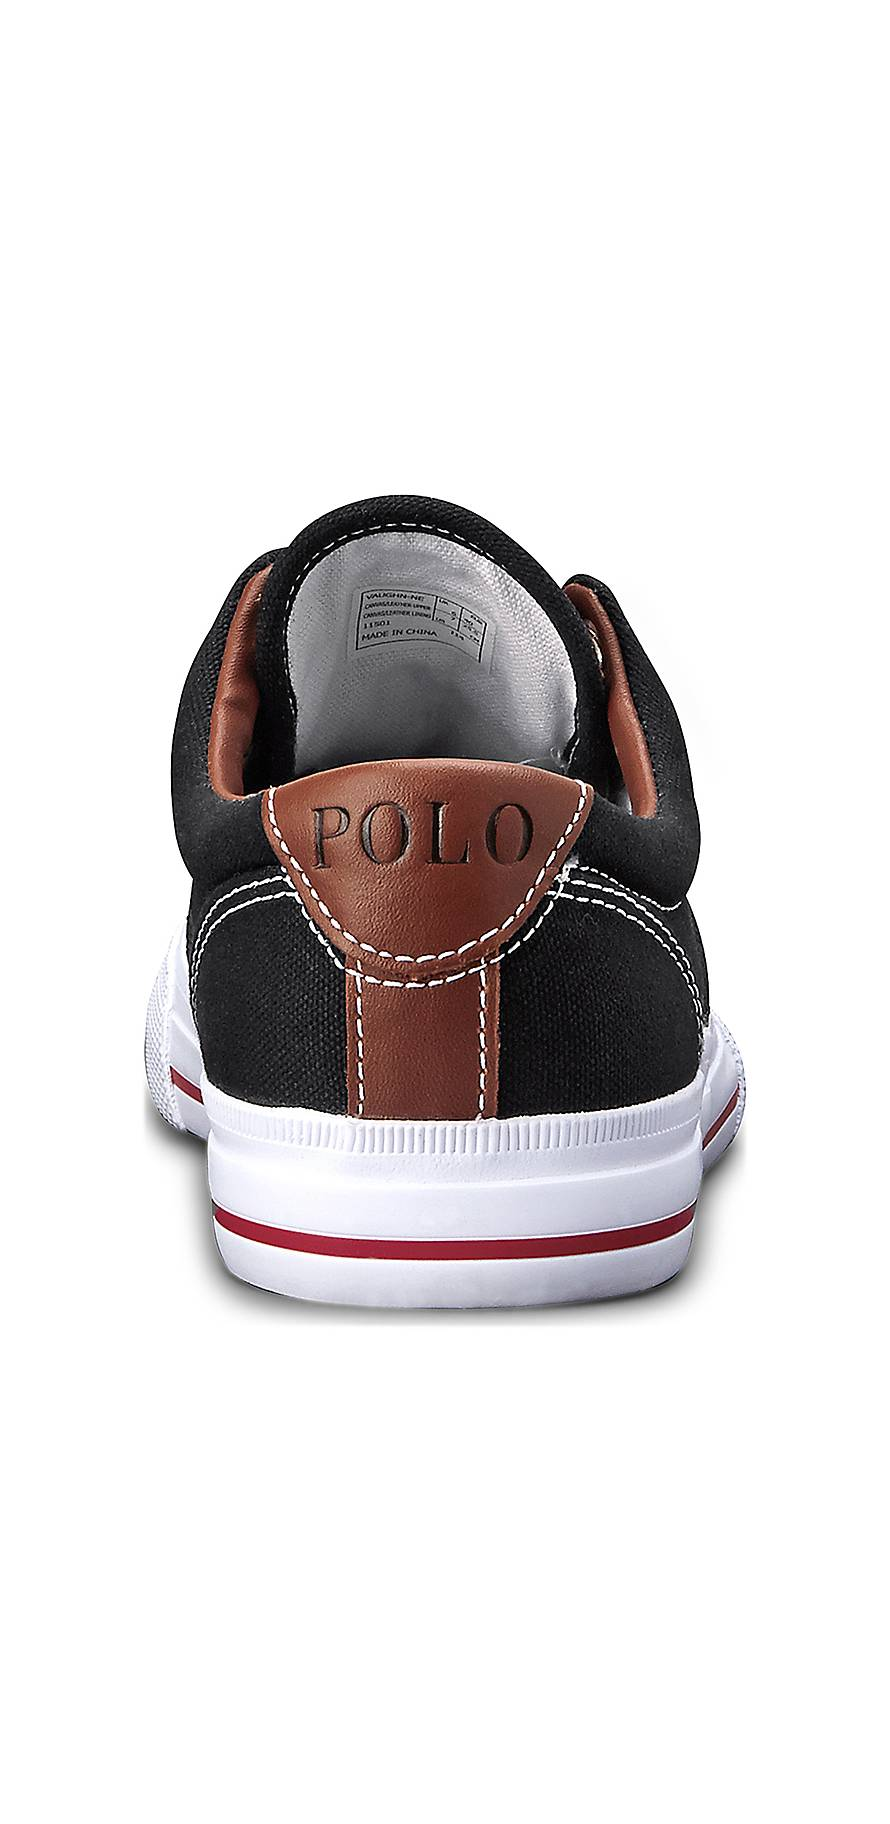 ralph lauren sneaker herren details about neu polo ralph. Black Bedroom Furniture Sets. Home Design Ideas